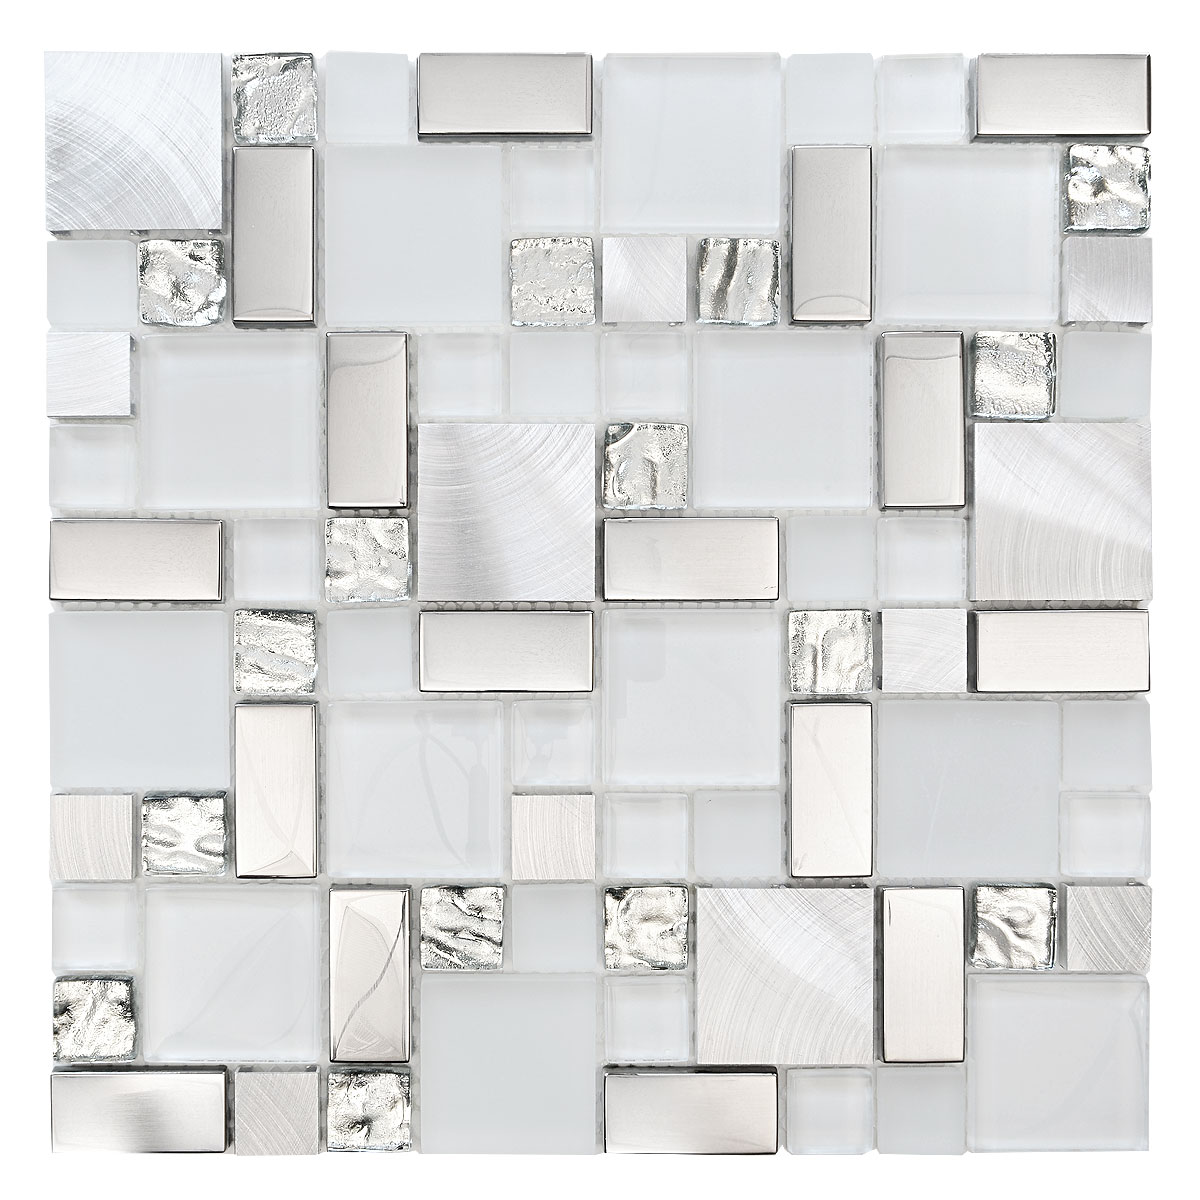 BA1138 Backsplash tile